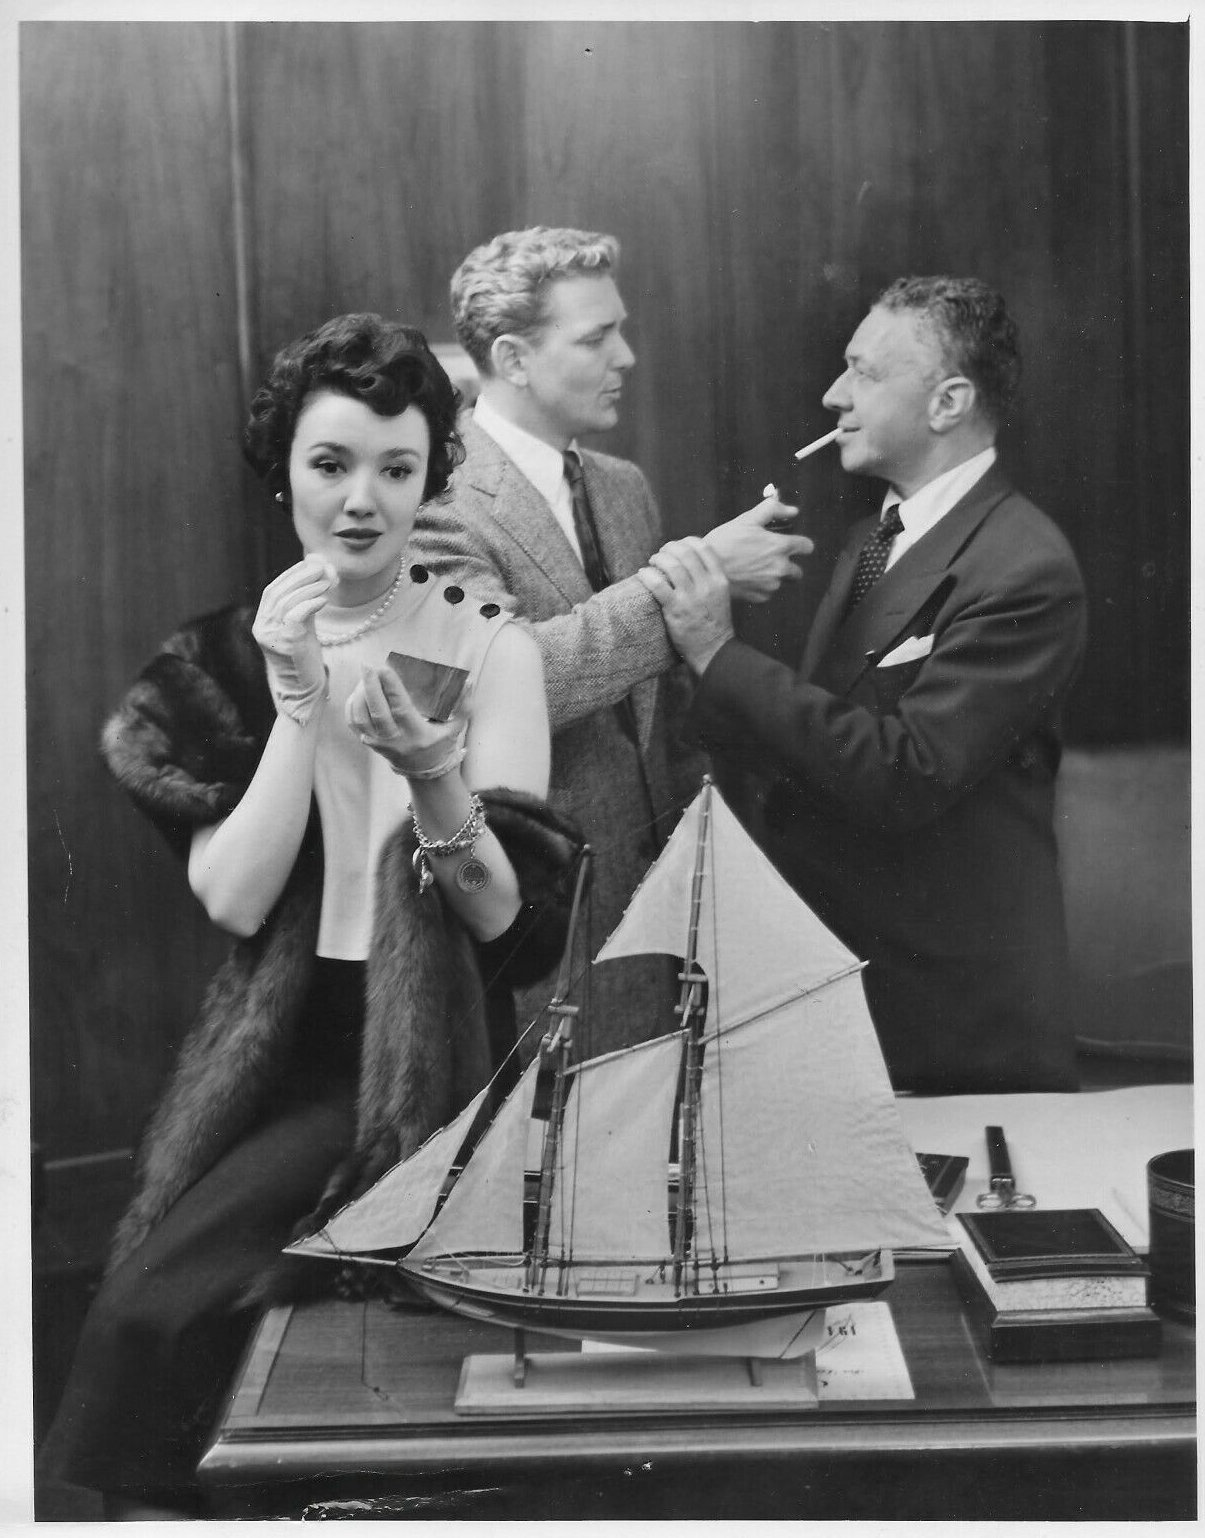 Eric Dressler, Charles Nolte, and Beverly Whitney in The Web (1950)